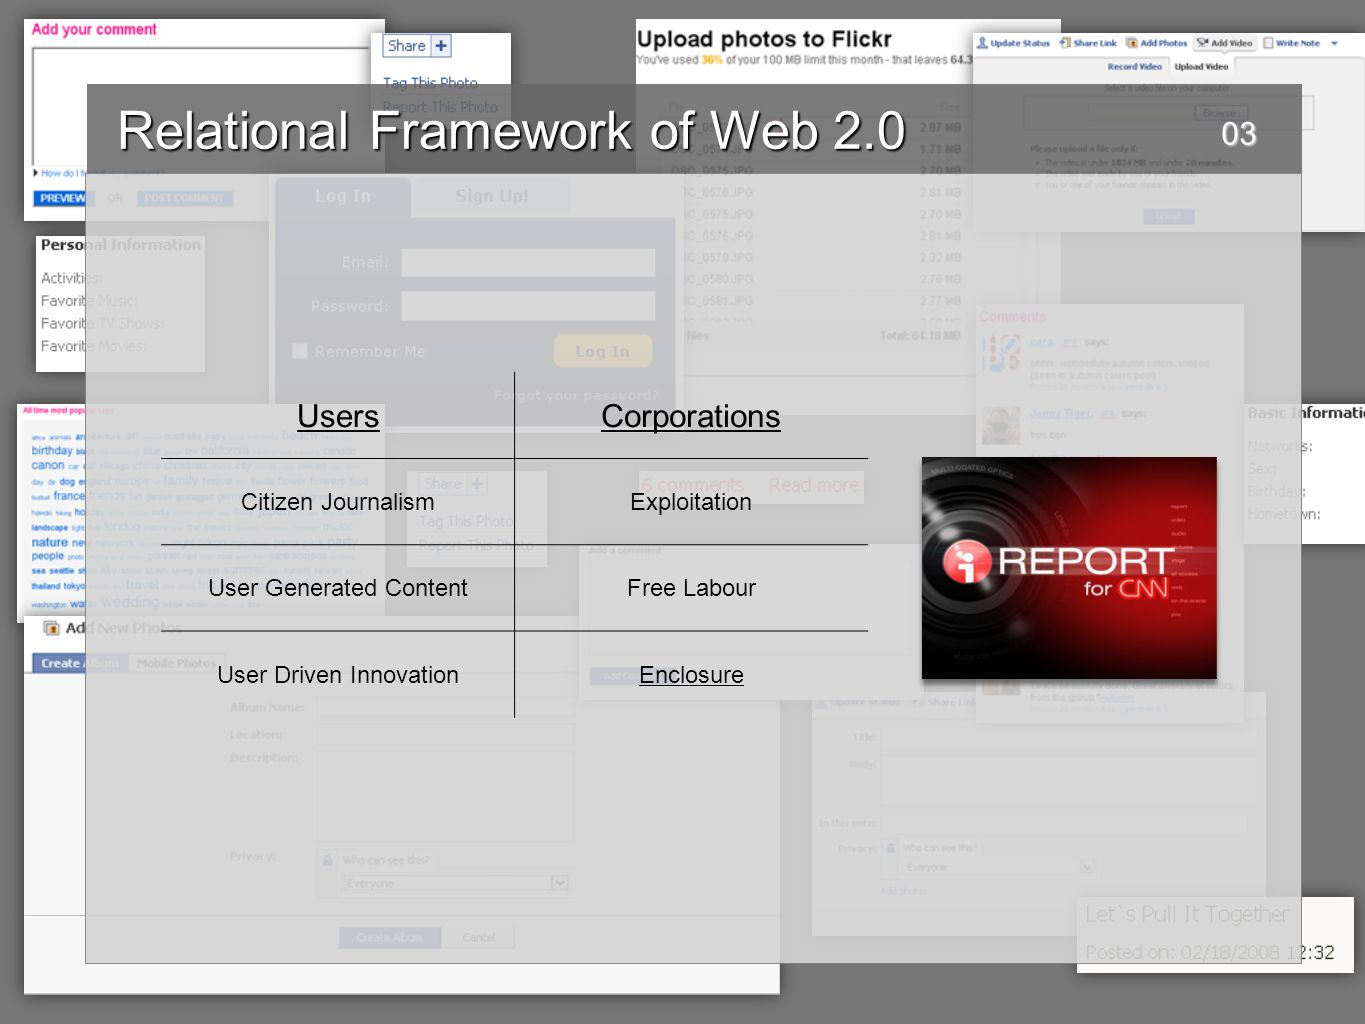 Relational Framework of Web 2.0 Relational Framework of Web 2.0 youtube video http://www.youtube.com/watch?v=gFBfXF3yqCo&feature=related http://www.youtube.com/watch?v=gFBfXF3yqCo&feature=related04